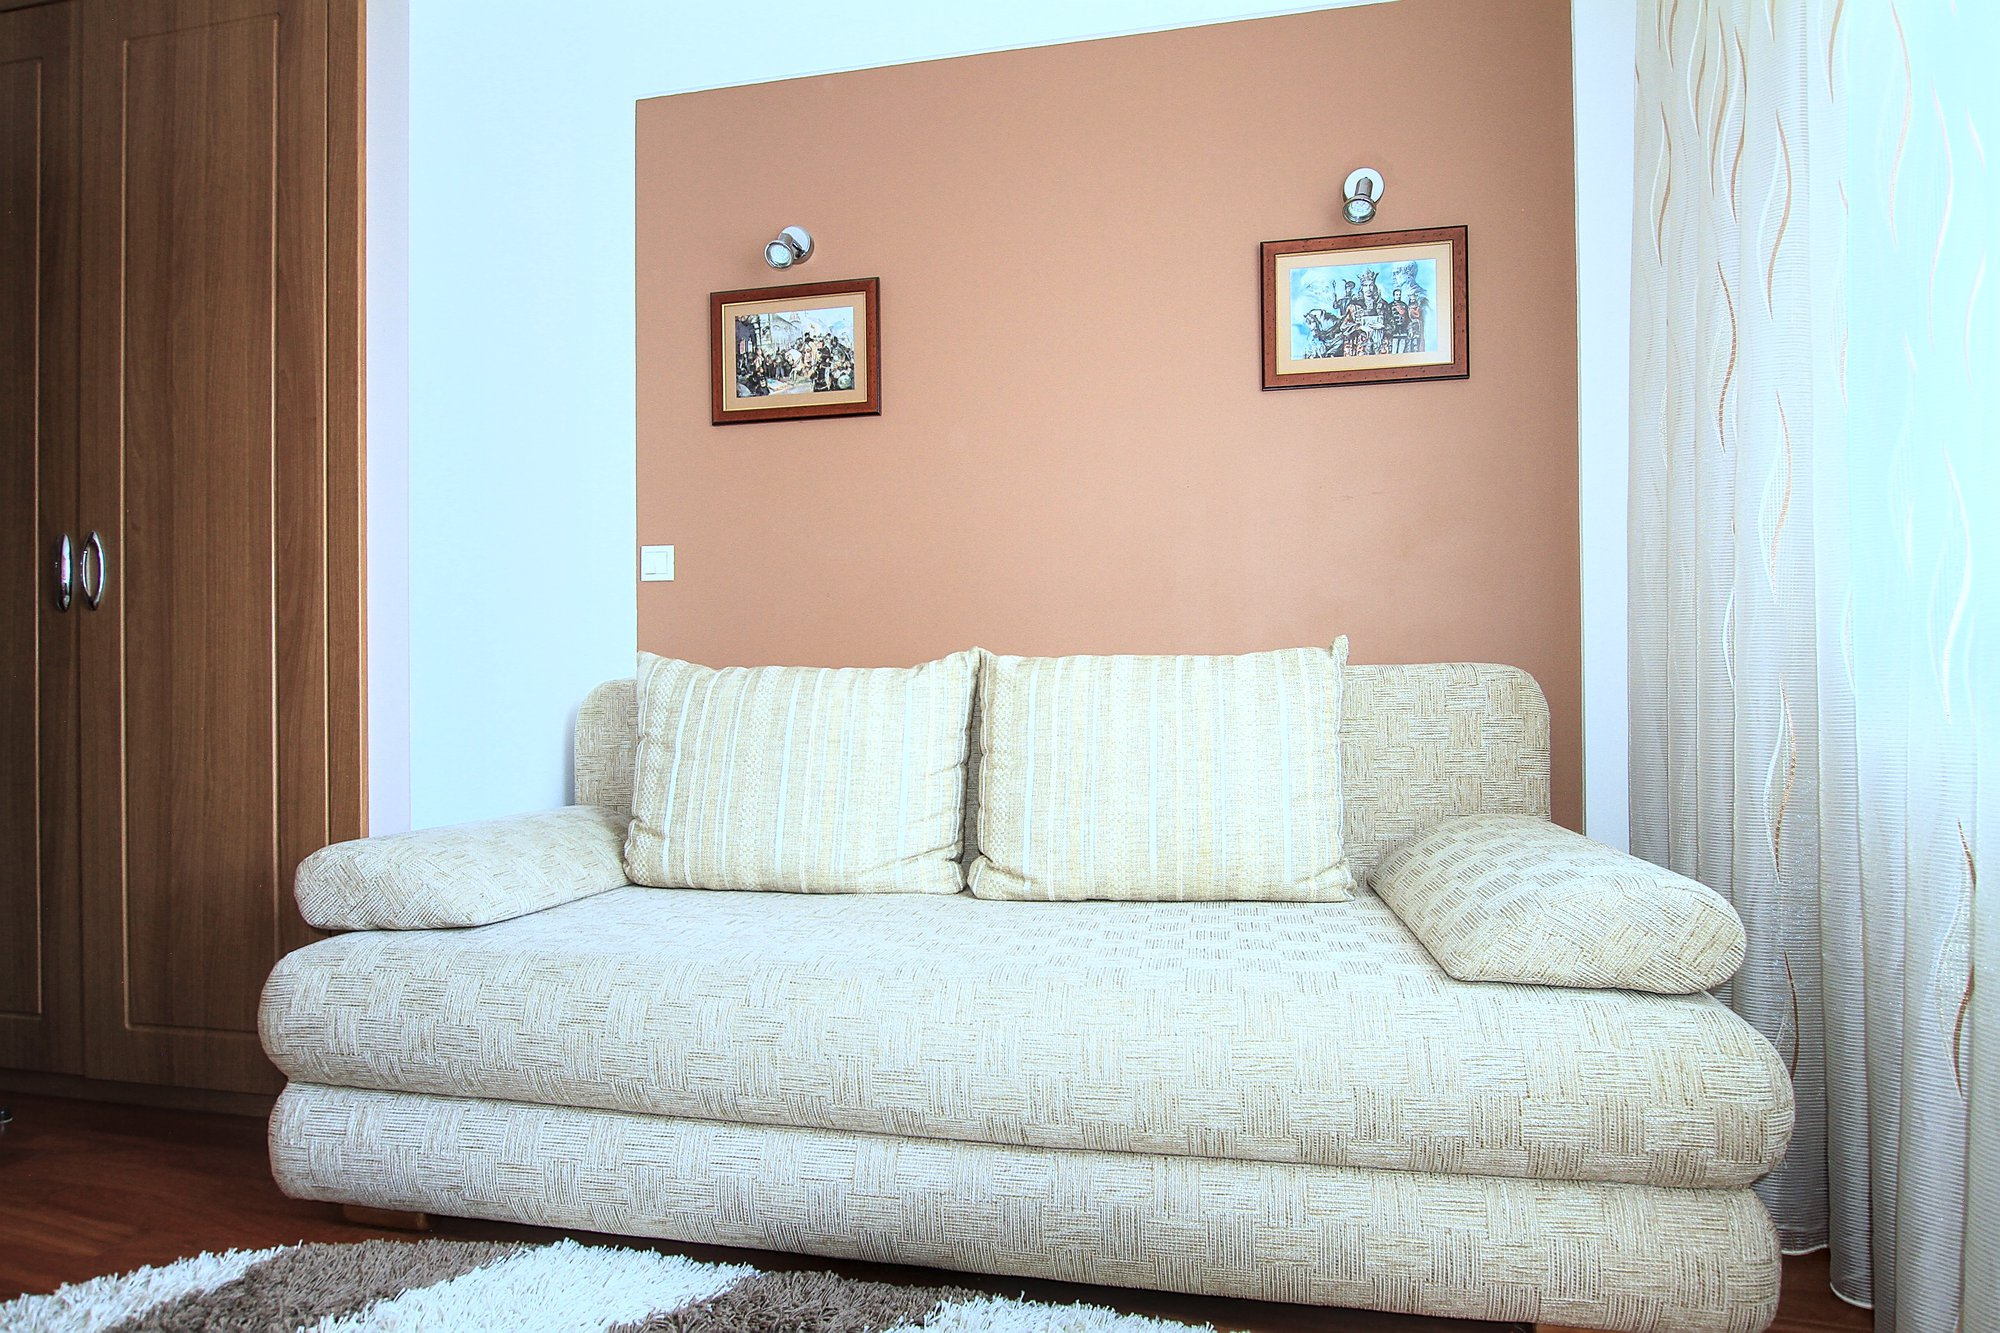 A-40-3-room-apartment-for-rent-in-Chisinau-Botanica_12.jpg